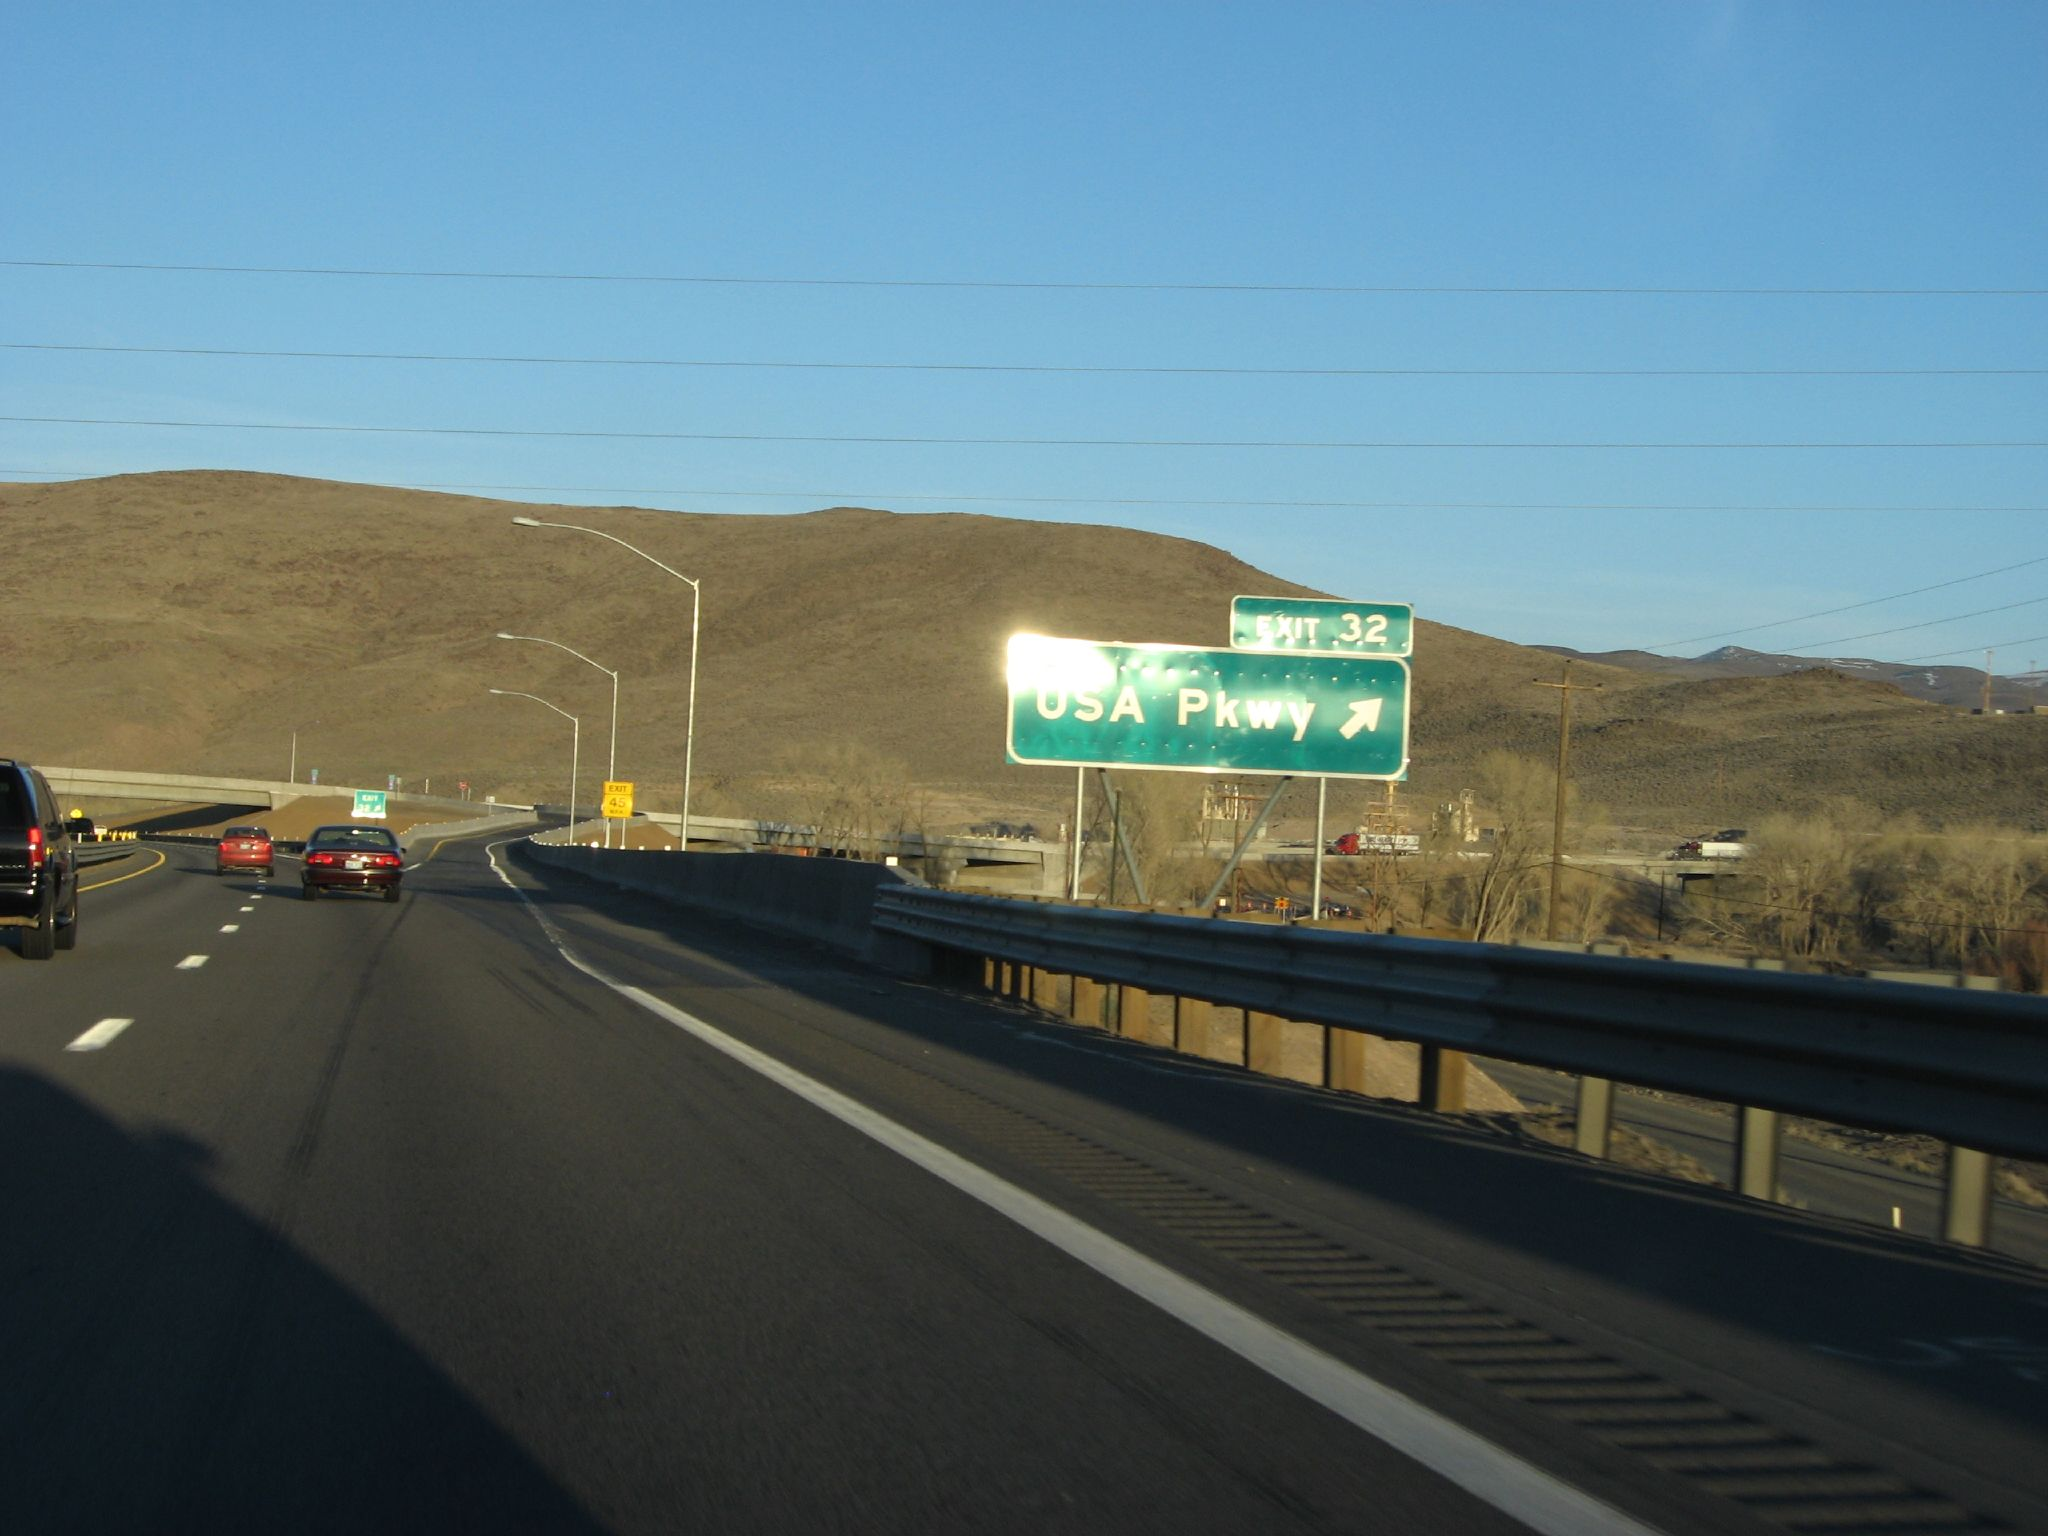 fileexit 32 usa parkway of the interstate 80 in nevadajpg